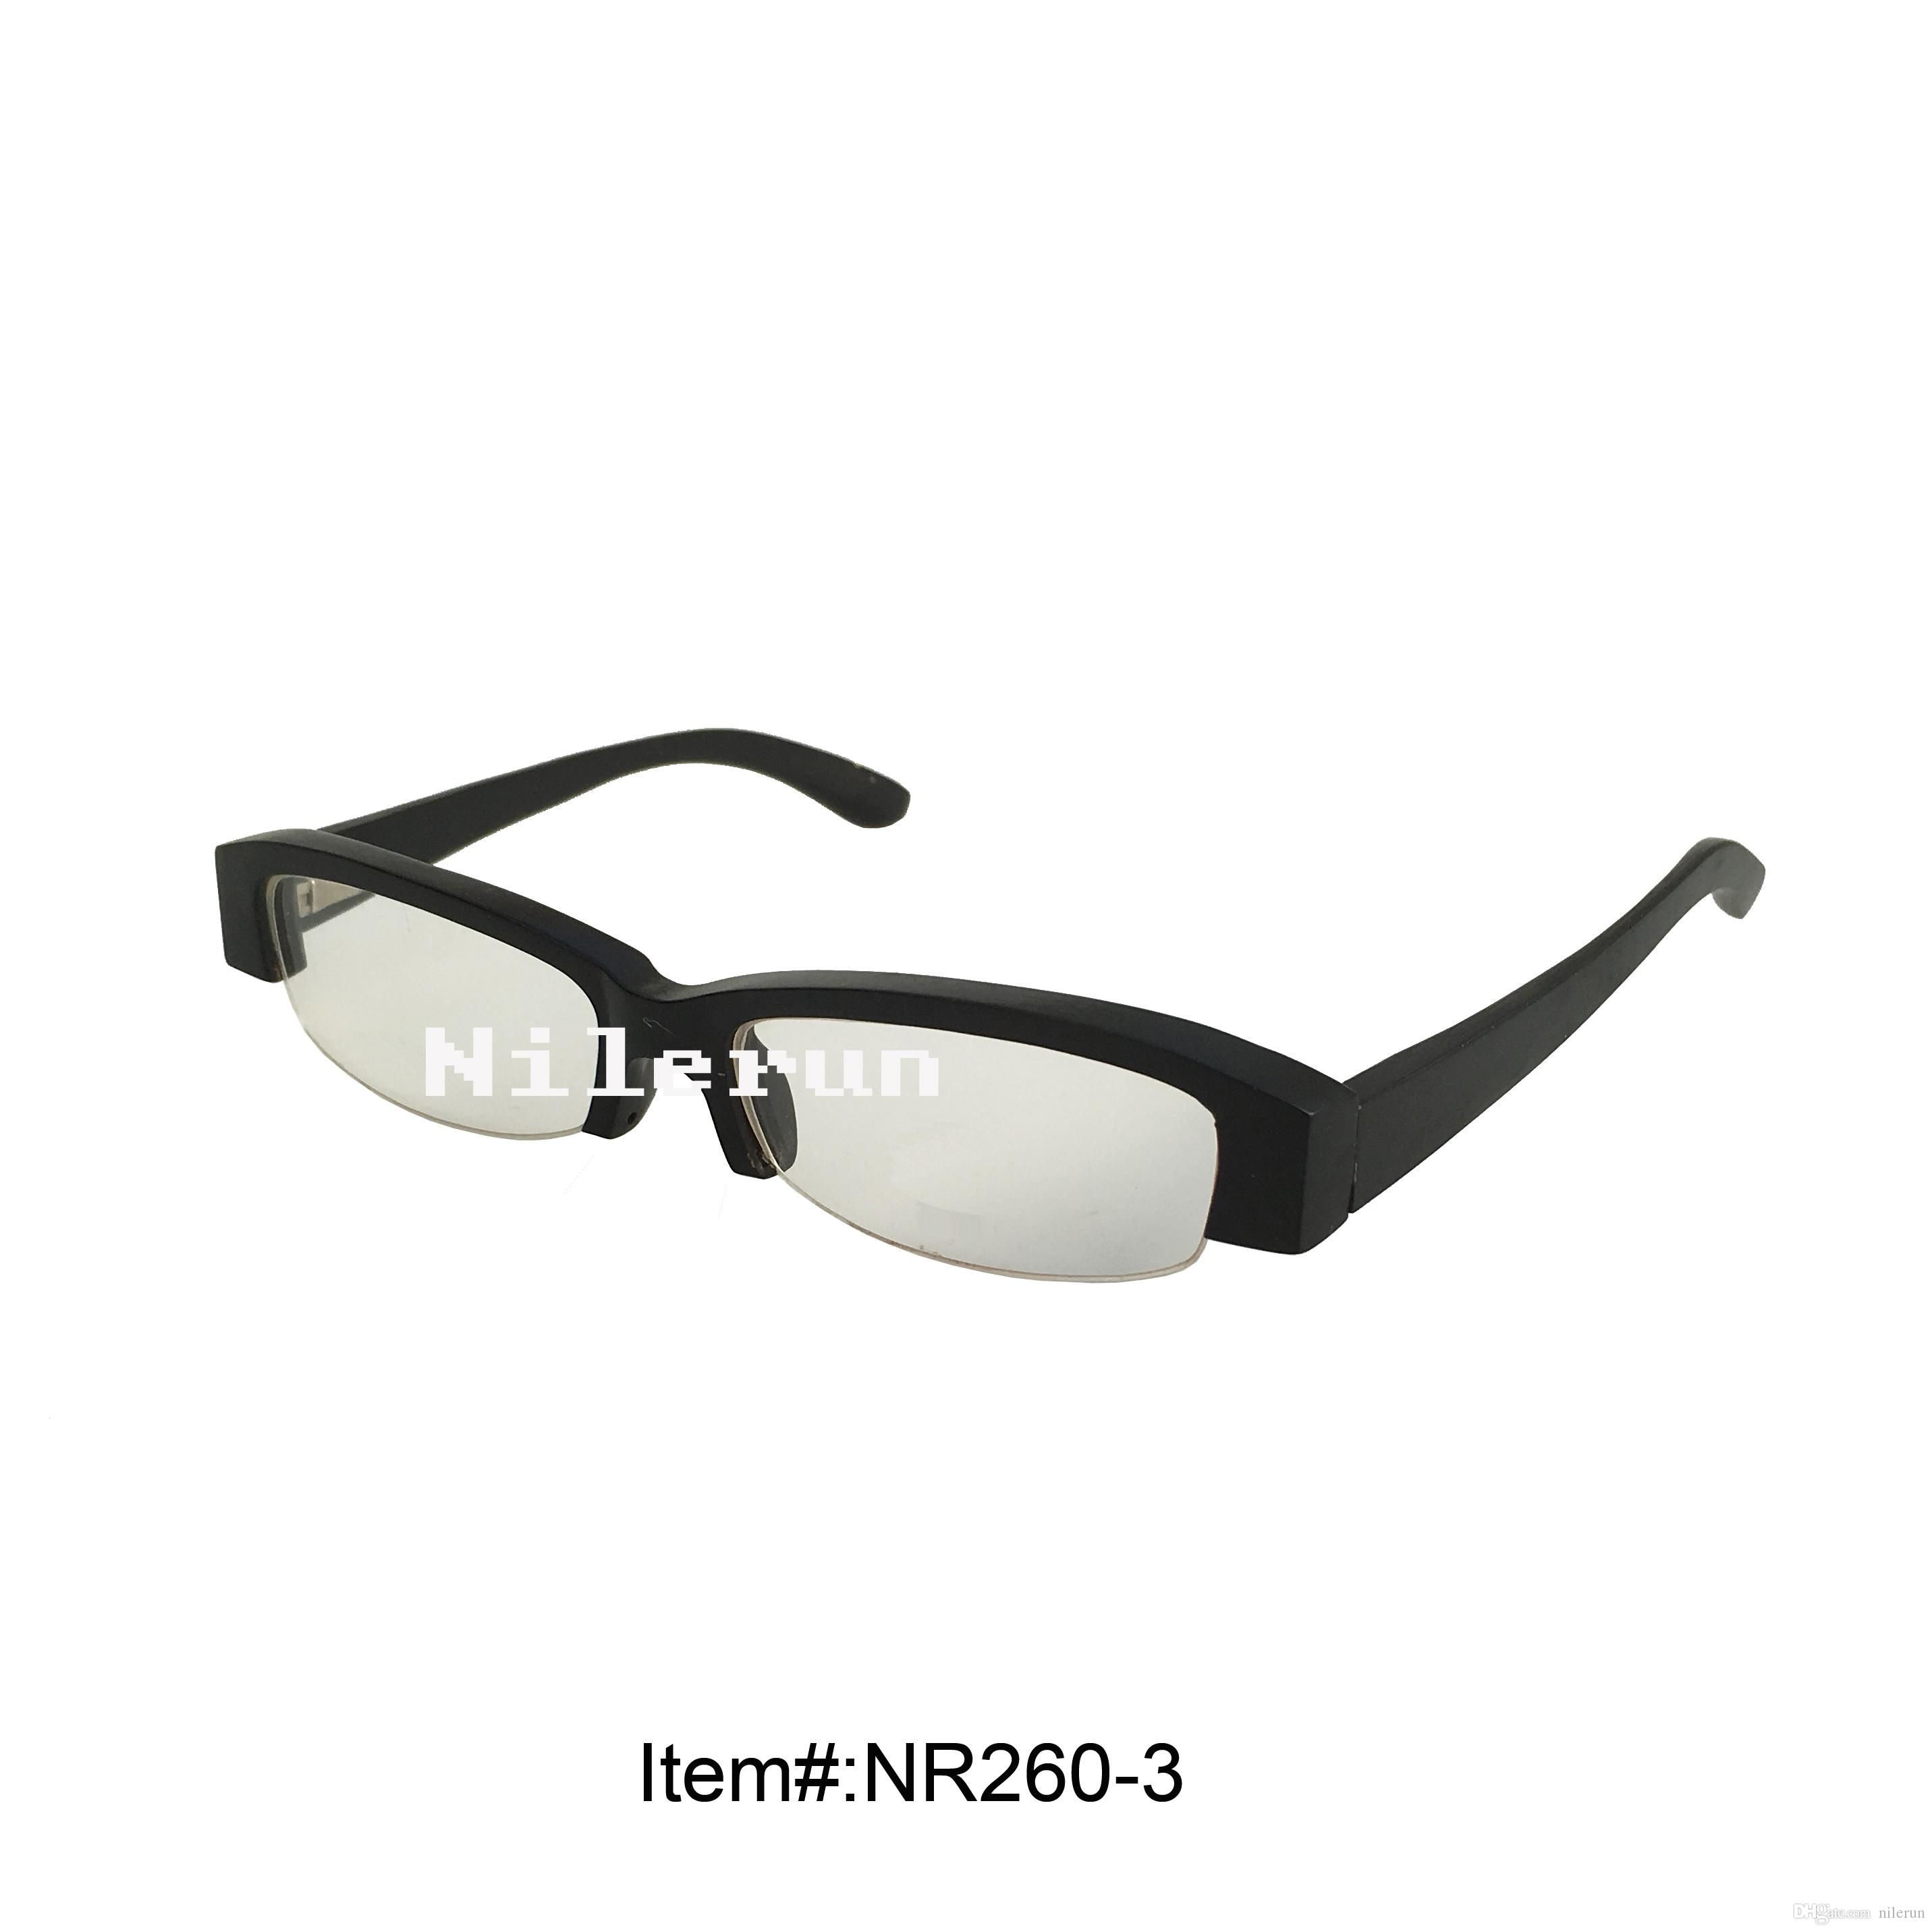 4129181e1c Small Black Wood Reading Glasses Half Frame Eyeglasses Black Reading  Glasses Reading Glasses Online with  52.46 Piece on Nilerun s Store